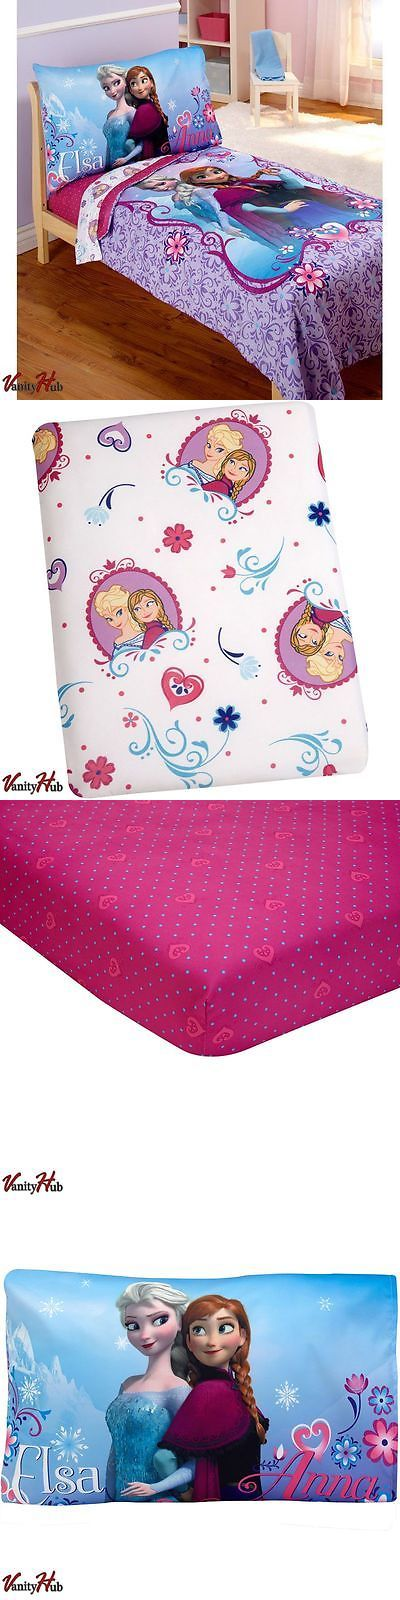 Kids at Home: Disney Frozen Elsa And Anna Bedding 4Pc Set Comforter Sheets Toddler Bed Baby Crib -> BUY IT NOW ONLY: $45.71 on eBay!